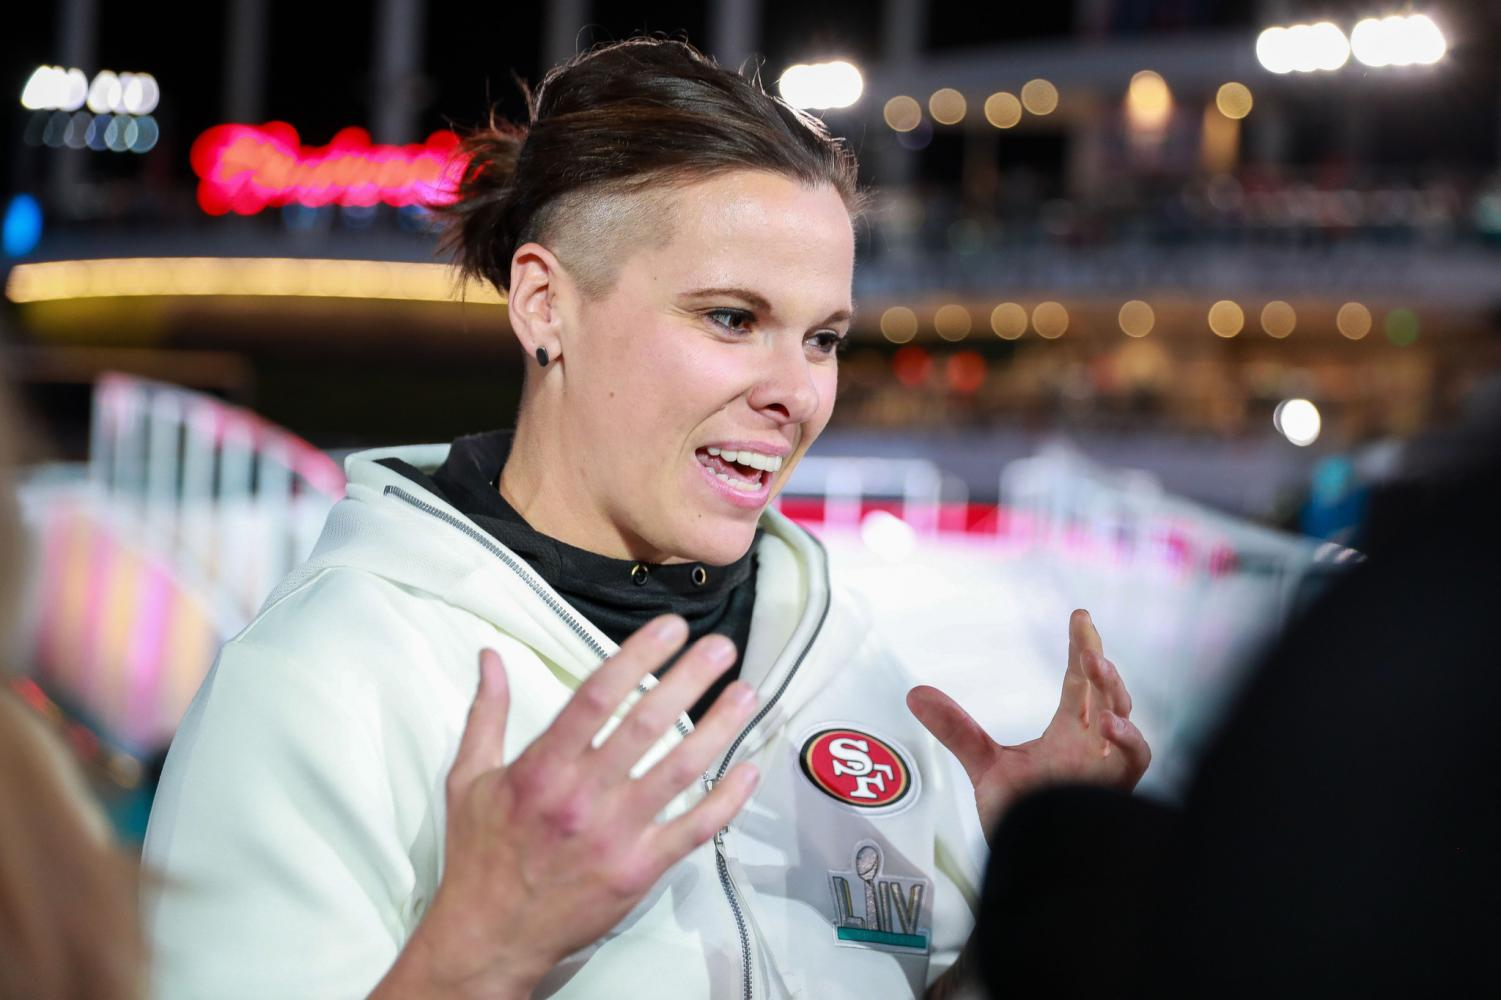 San Francisco 49ers' Offensive assistant coach Katie Sowers is seen at the Miami Marlins Park during Super Bowl opening night on Monday, Jan. 27.